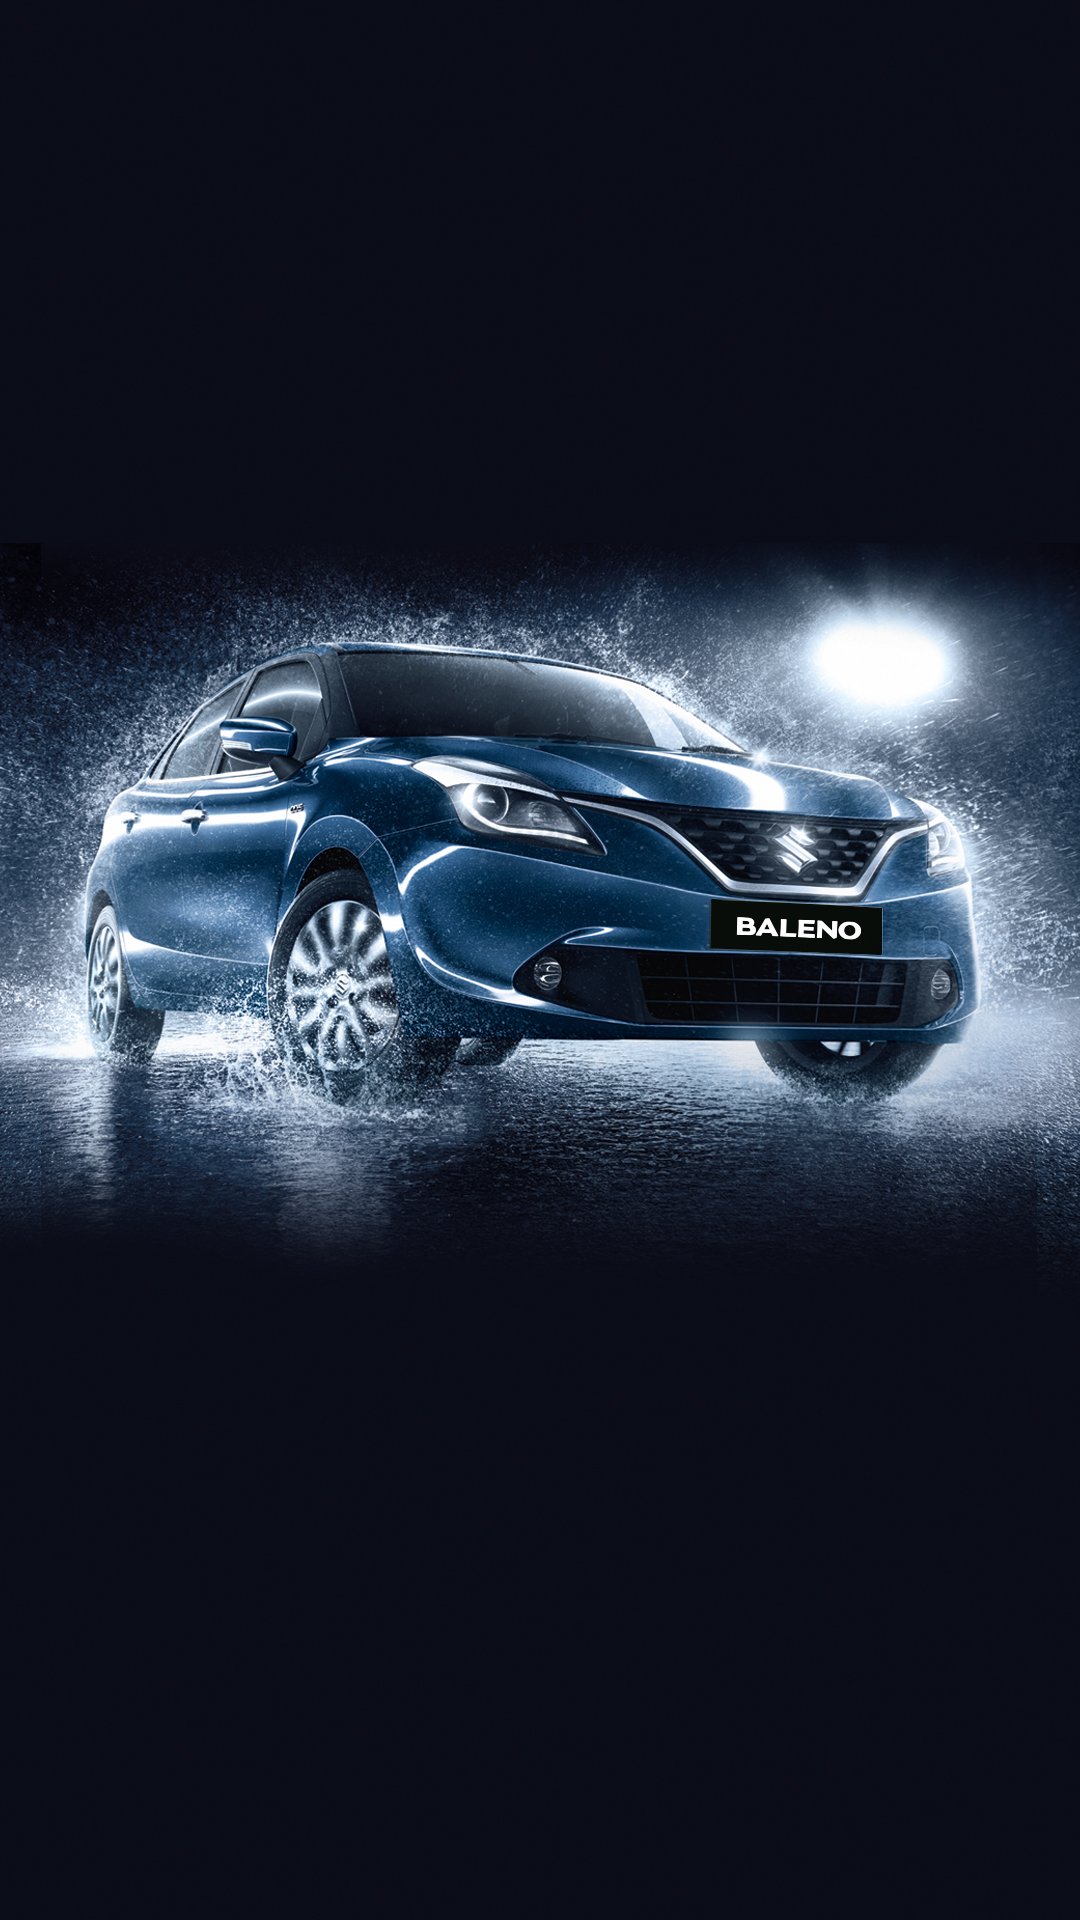 Iphone 7 Wallpapers Quote Baleno Images Wallpapers Photos Nexa